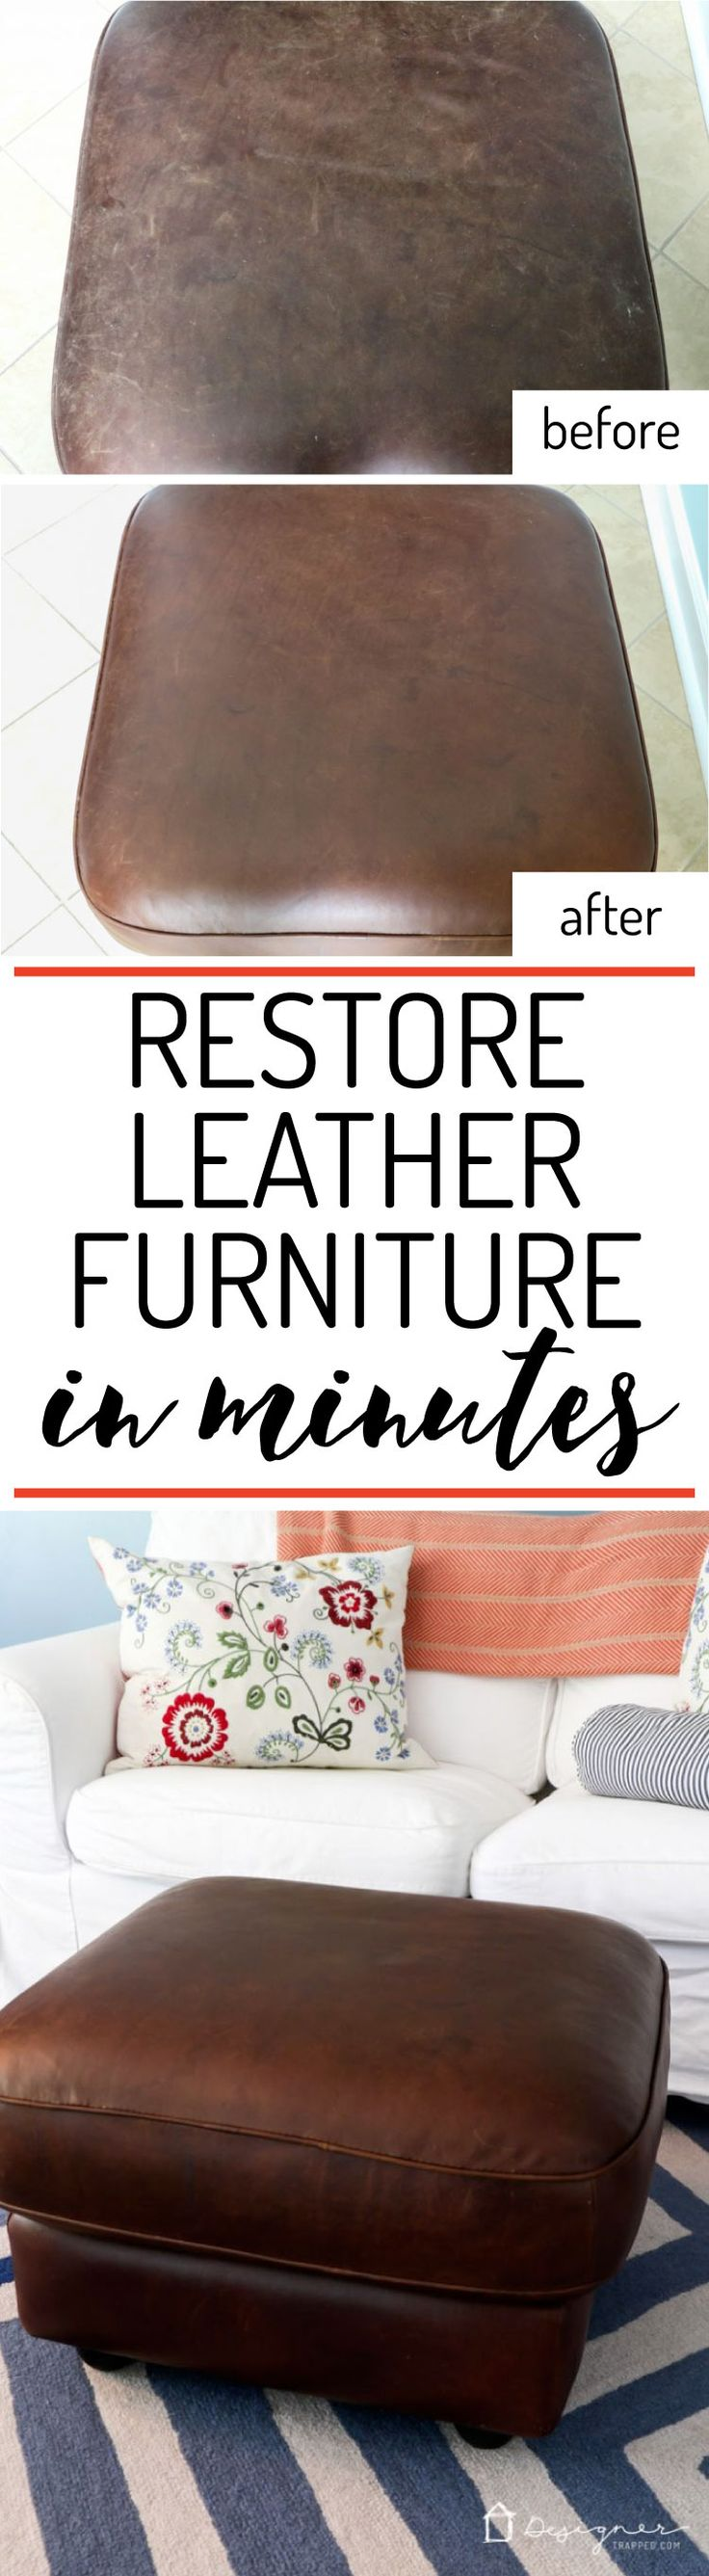 Best 25  Couch cleaning ideas on Pinterest   Cleaning microfiber sofa   Cleaning microfiber couch and Clean microfiber. Best 25  Couch cleaning ideas on Pinterest   Cleaning microfiber